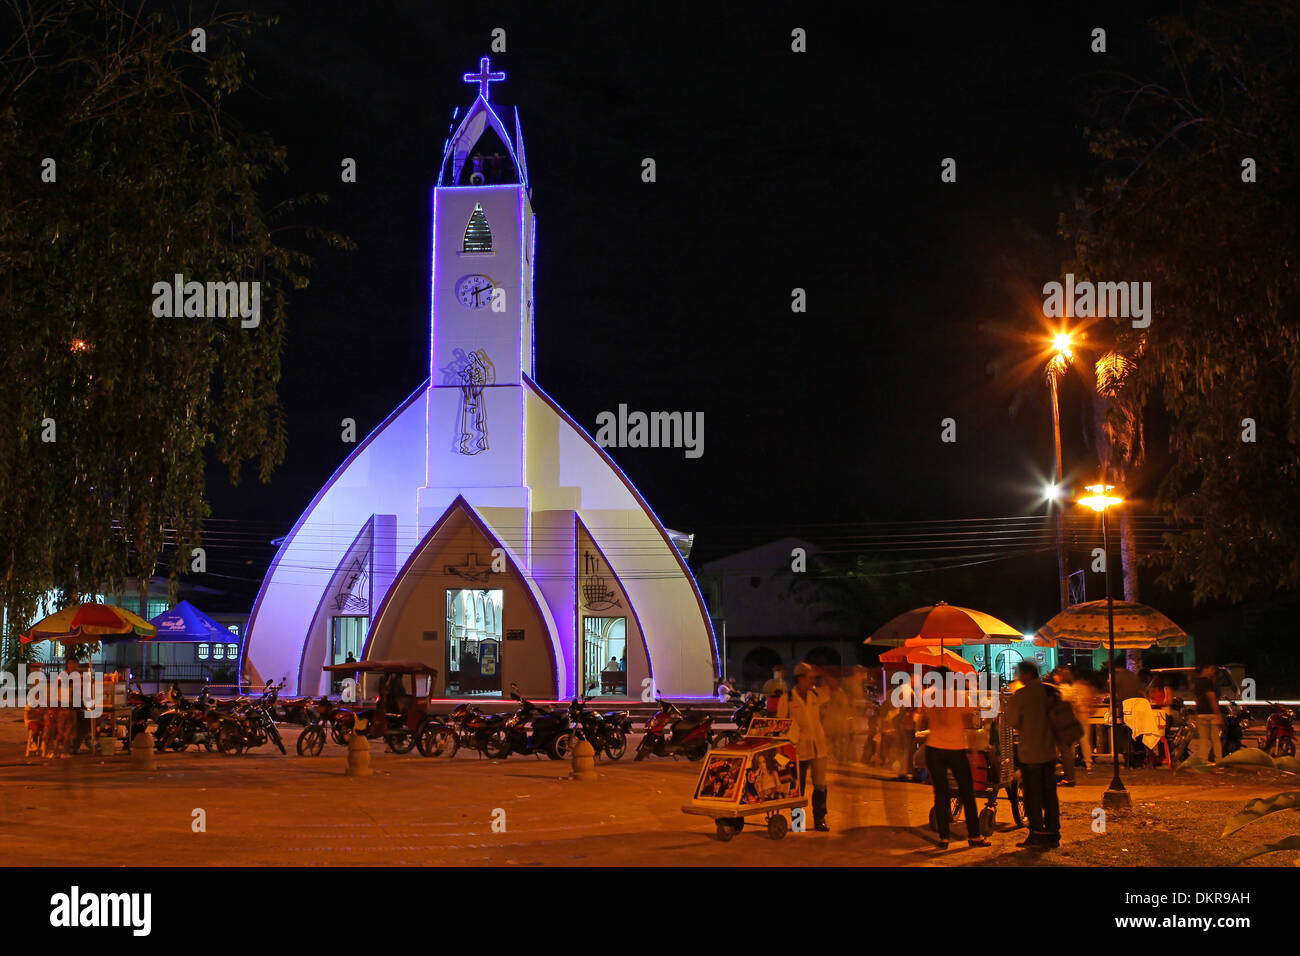 Christmas In Colombia South America.Leticia Amazon Colombia South America Church Plaza